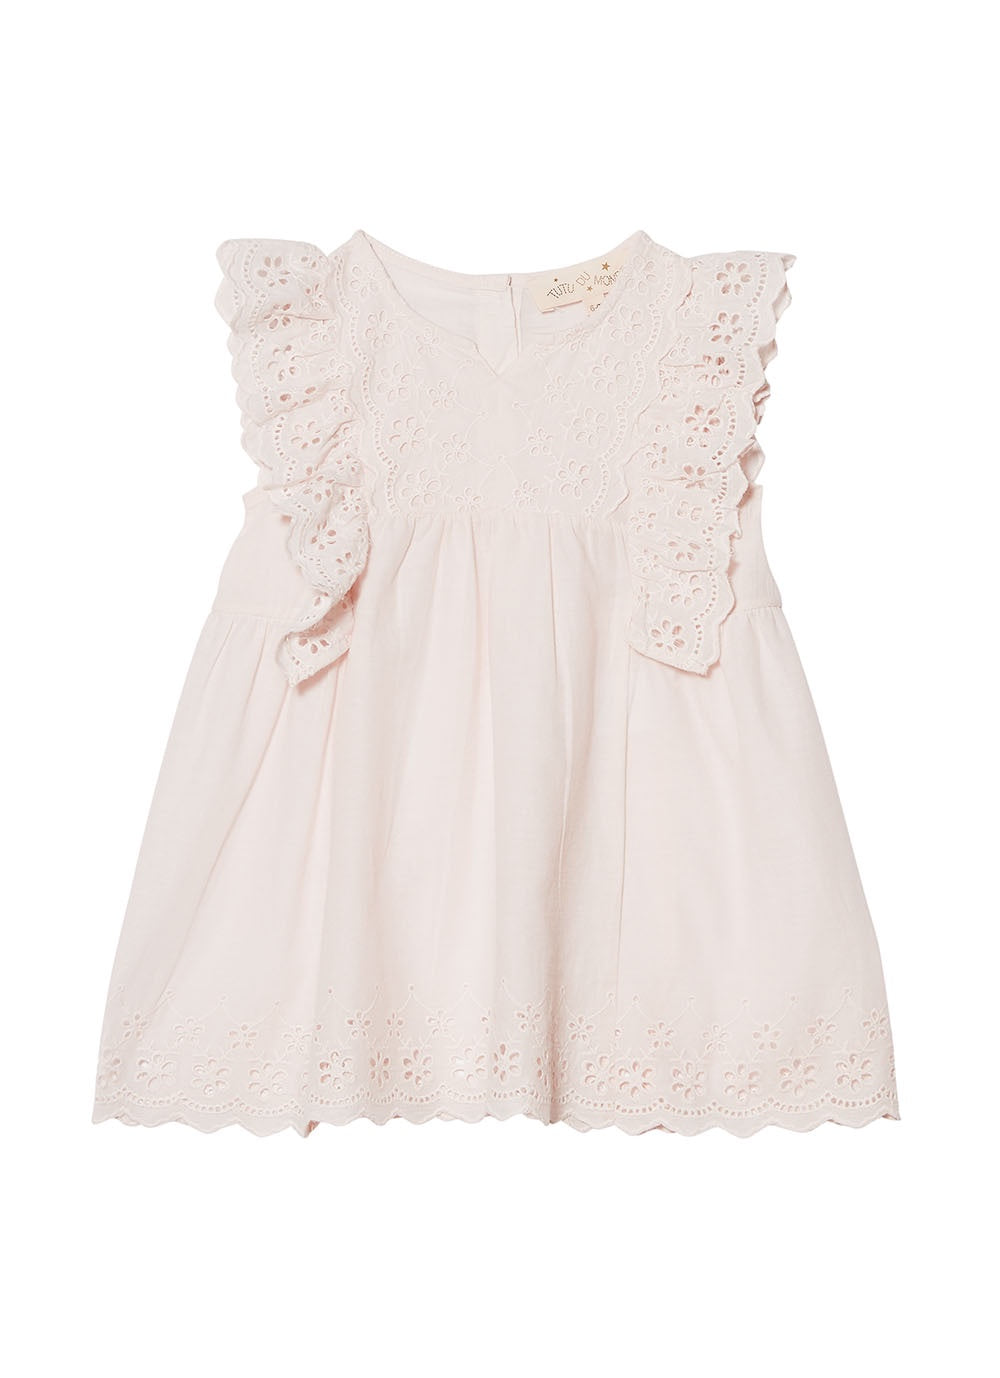 Tutu Du Monde - Heidi Dress - Tea Rose